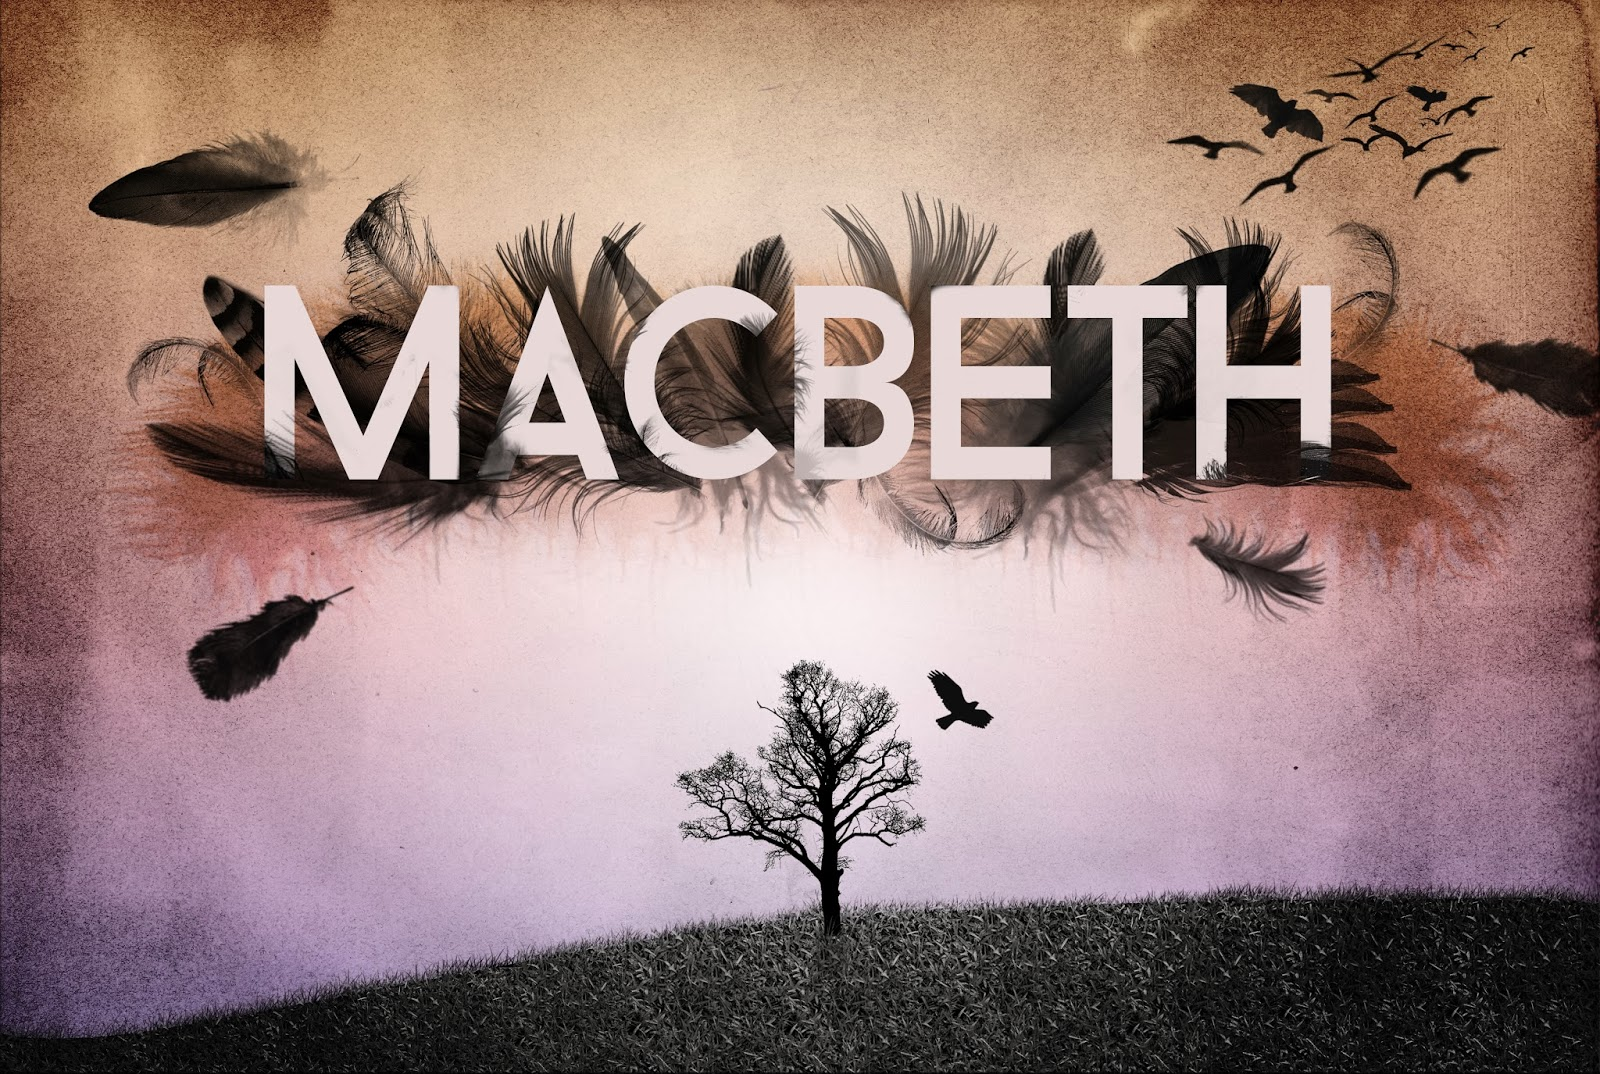 supernatural element in macbeth dc author at macbeth westend from  alive alive oh from first nest to first night from first nest to first night supernatural elements